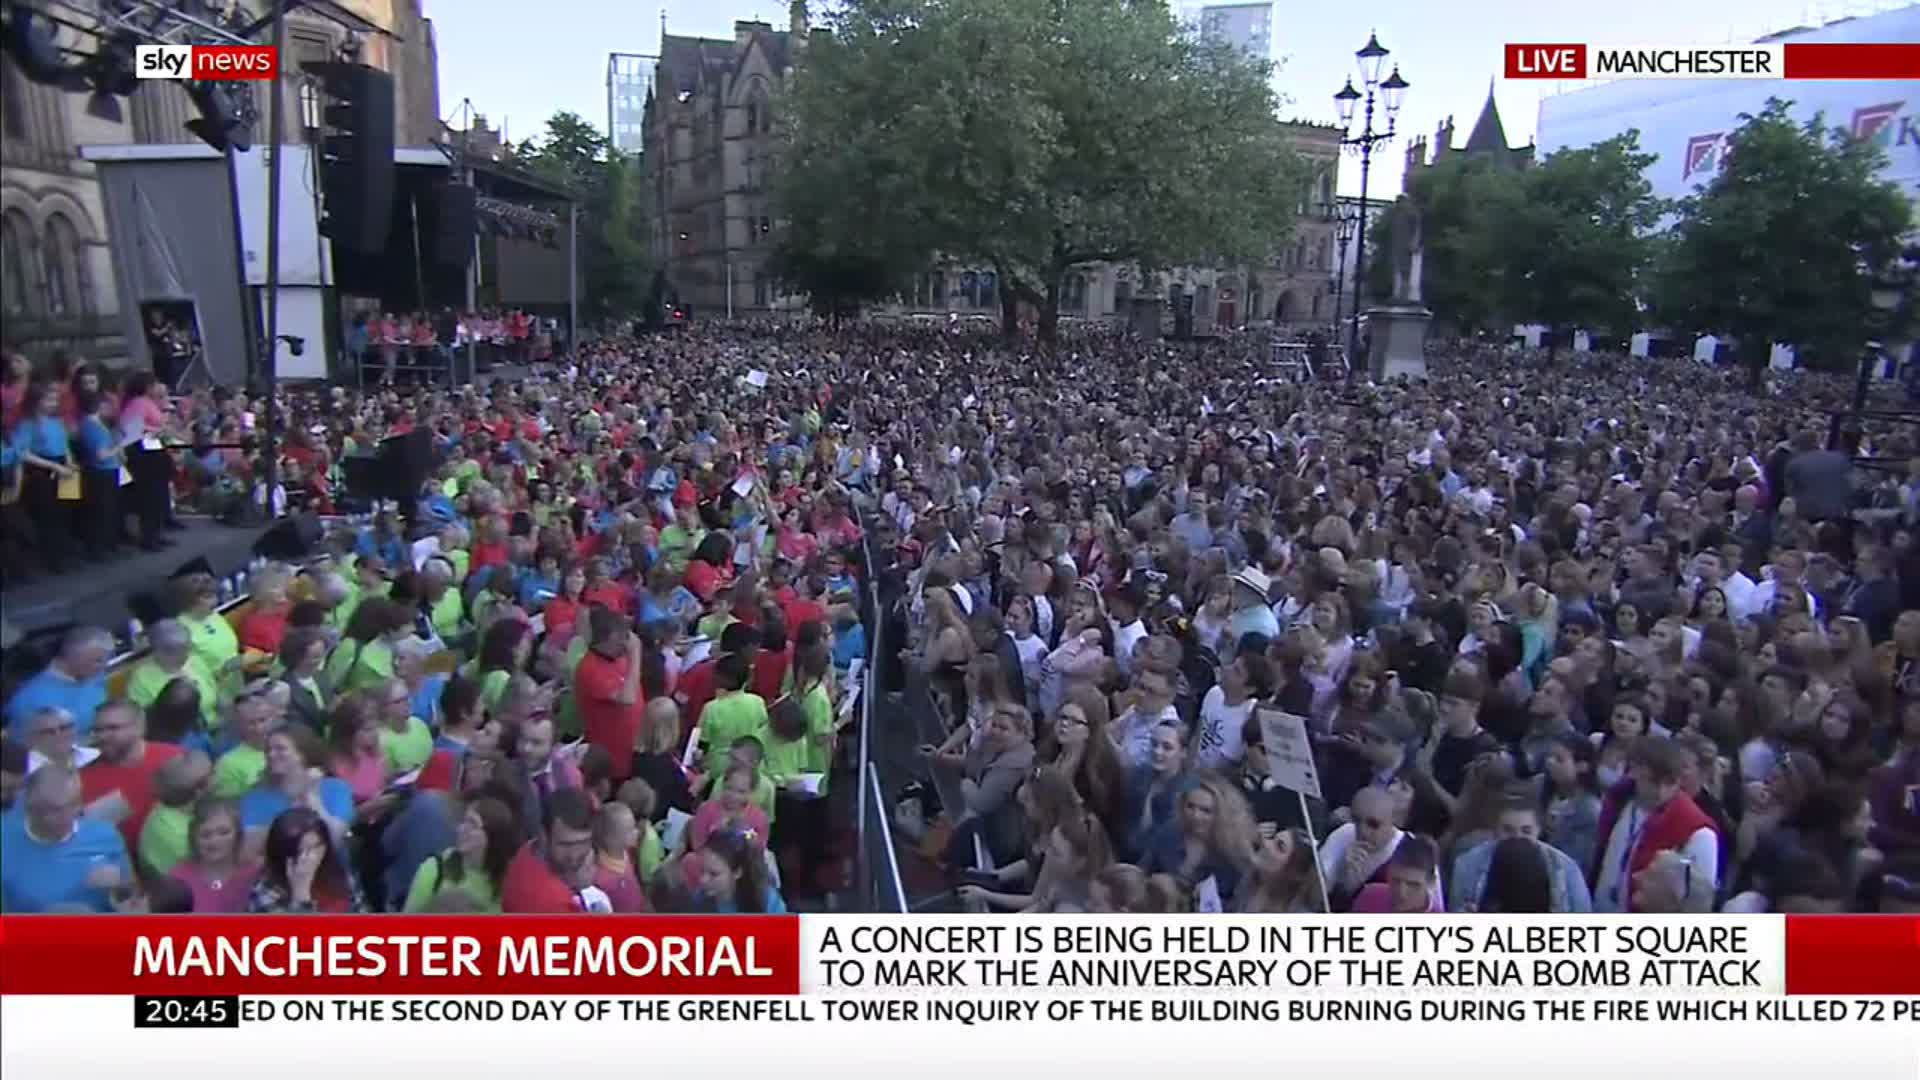 Crowd sings along to @Arianagrande's 'One Last Time' at the #ManchesterTogether concert https://t.co/BLmqhSSssy